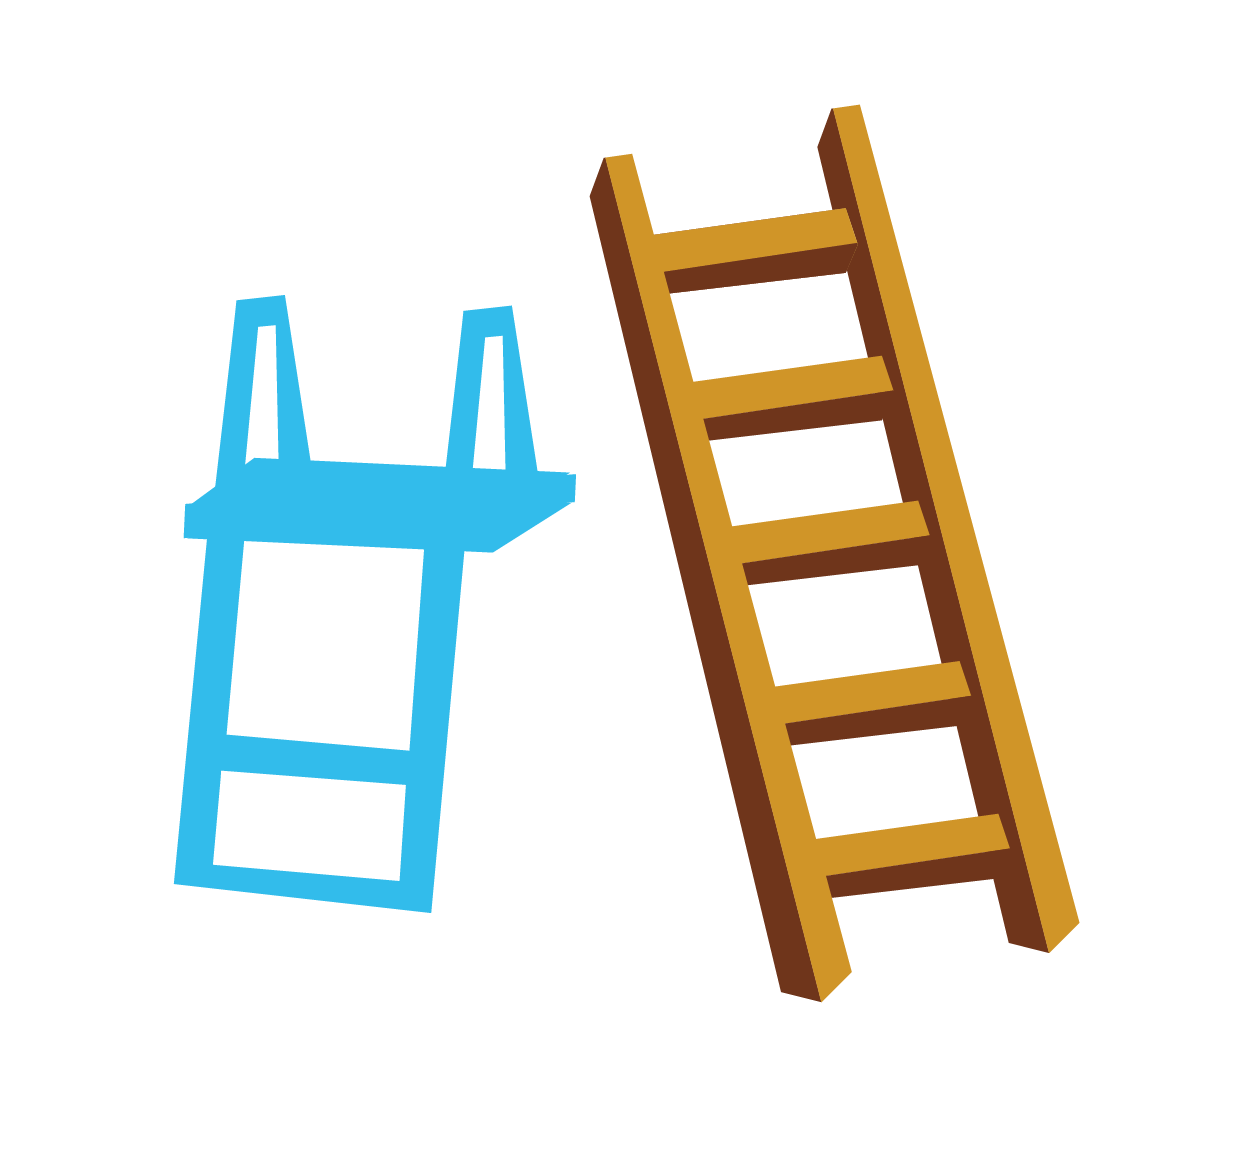 clip royalty free Rope ladder clipart. Stairs blue wooden ladders